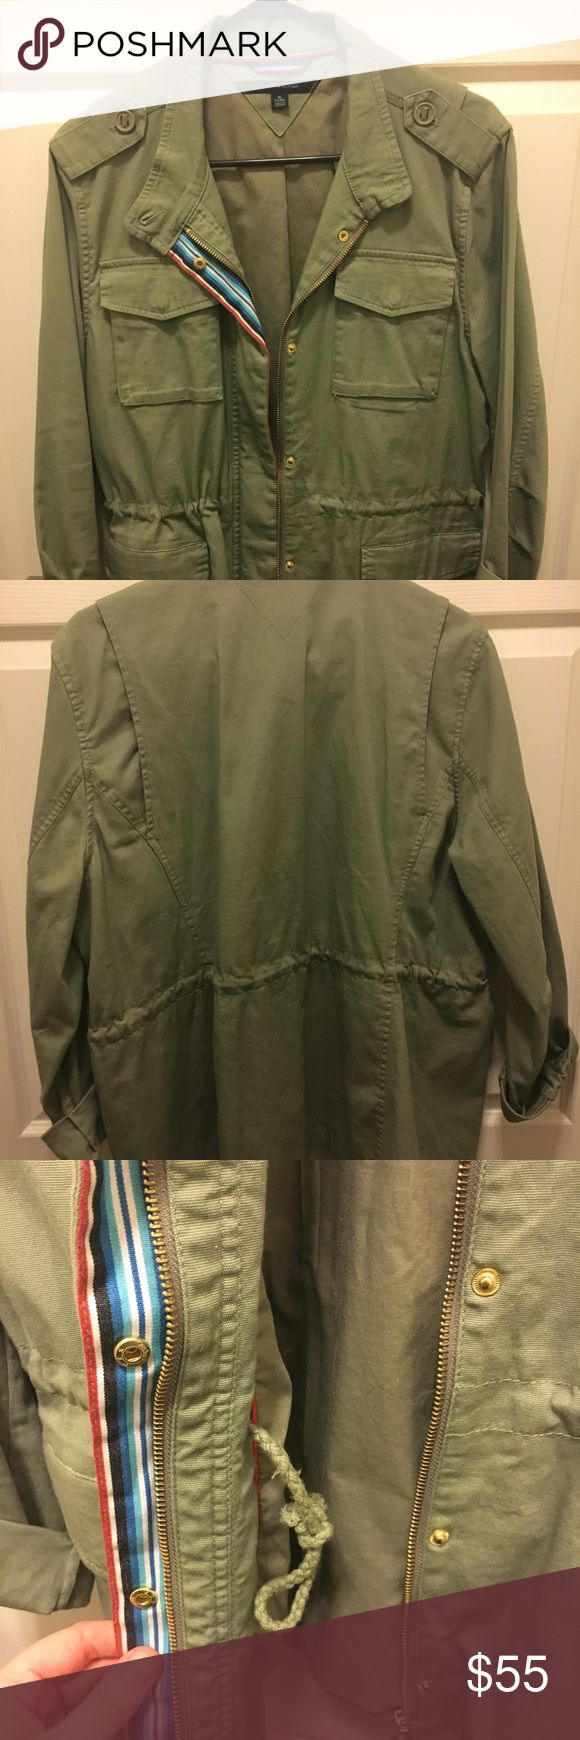 Tommy Hilfiger Army Jacket size XL Army green aka olive green army jacket by Tommy Hilfiger. Worn once, in great condition Tommy Hilfiger Jackets & Coats